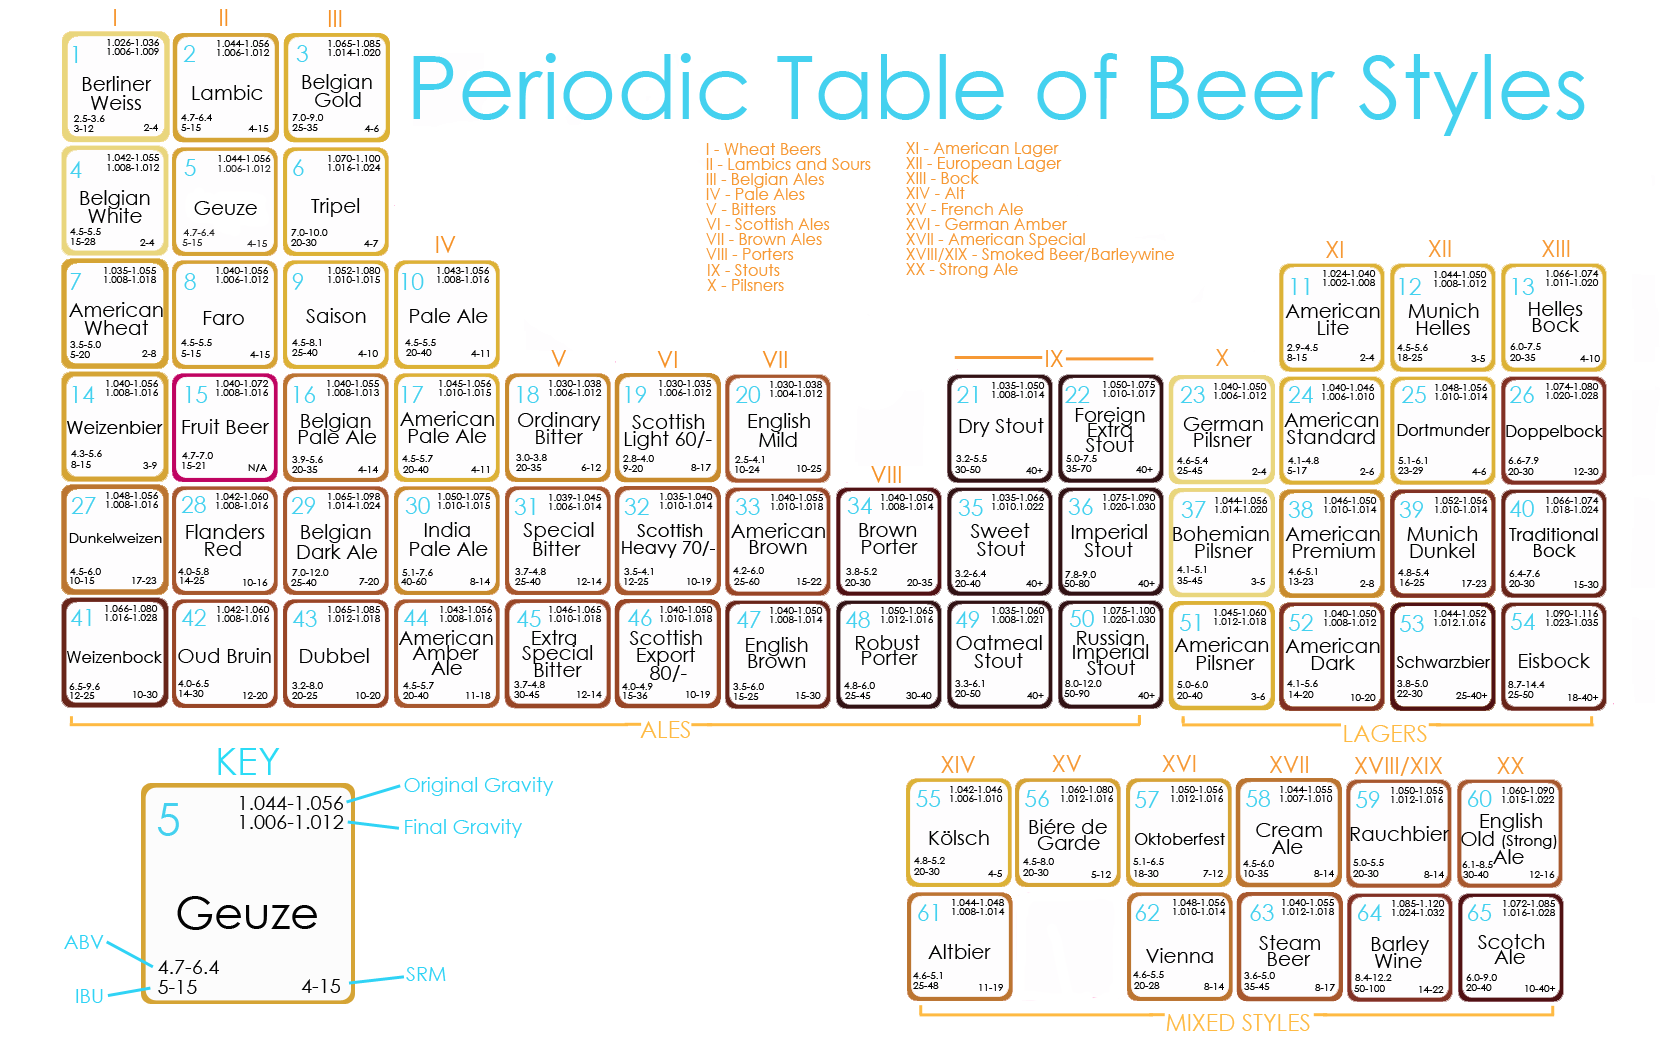 TableauPeriodic